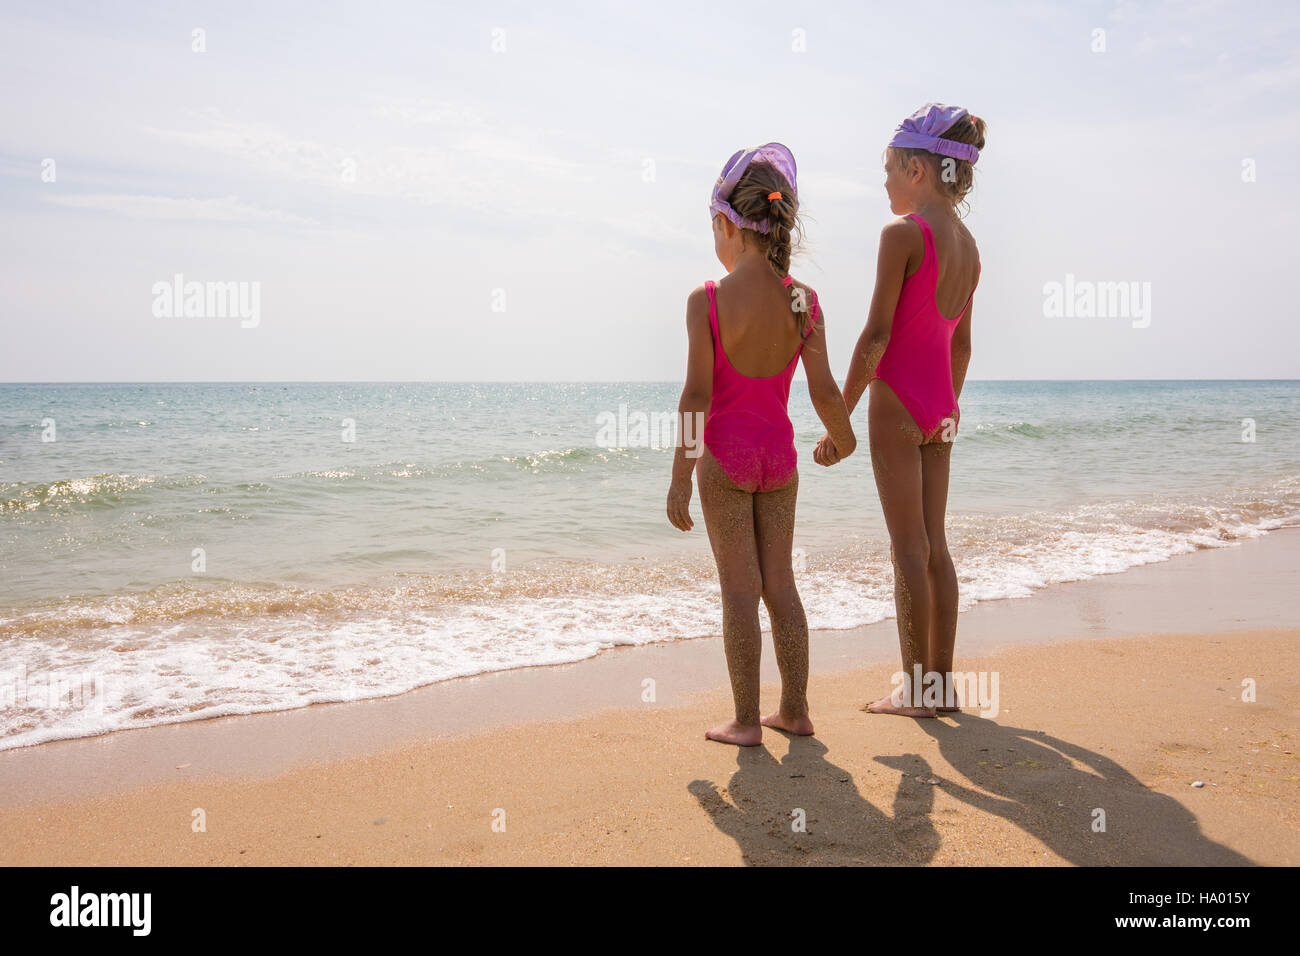 Two girls in bathing suits standing on the beach and look at the horizon Stock Photo